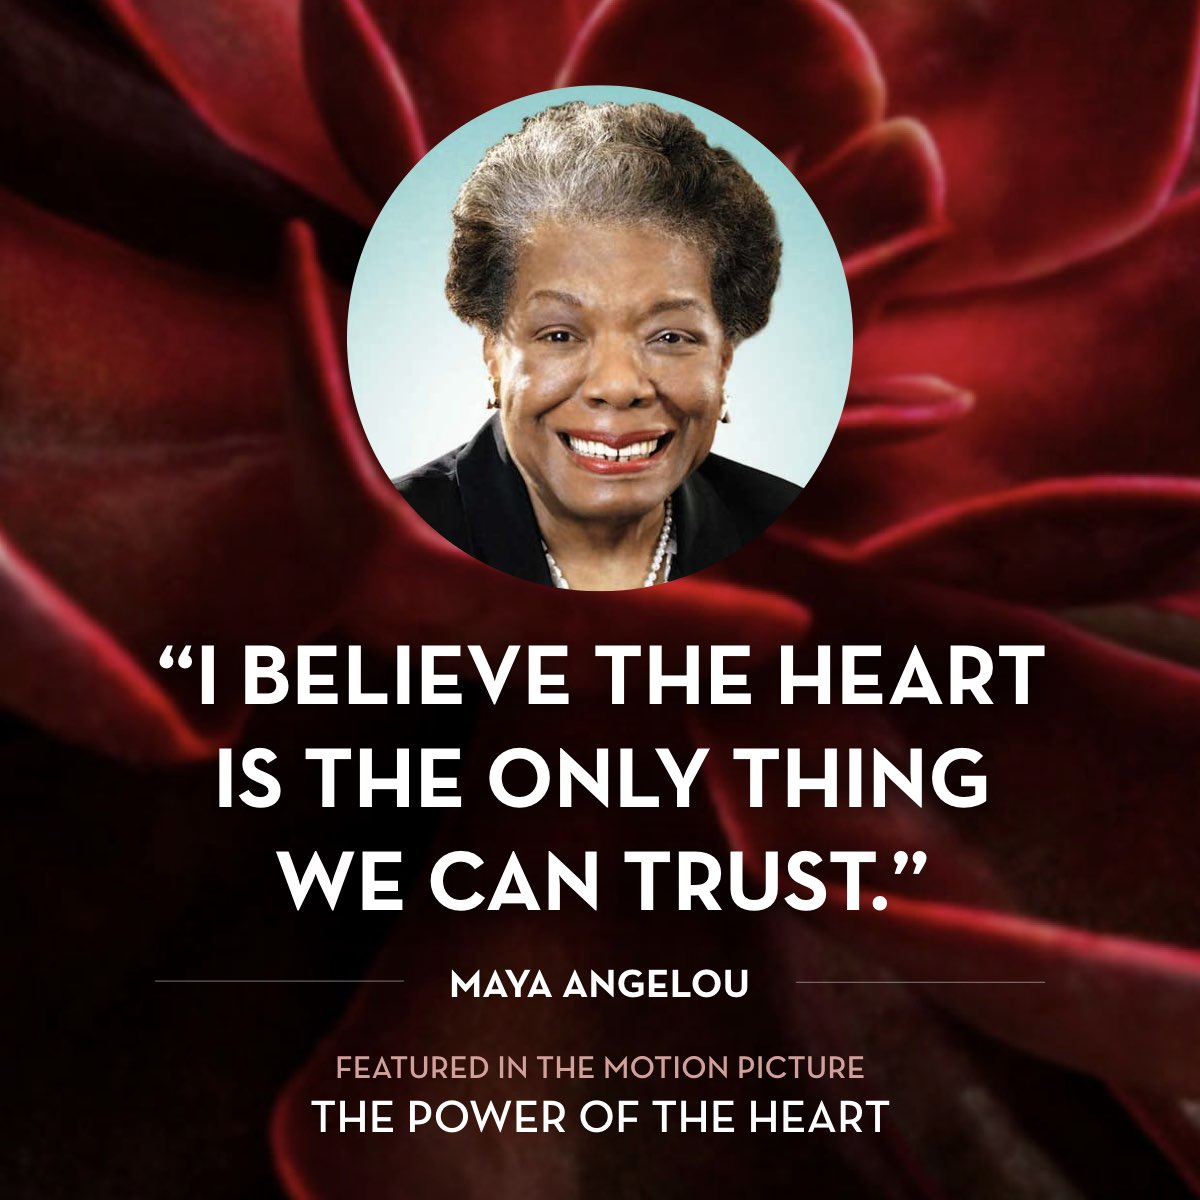 I believe the heart is the only thing we can trust. -  Maya Angelou